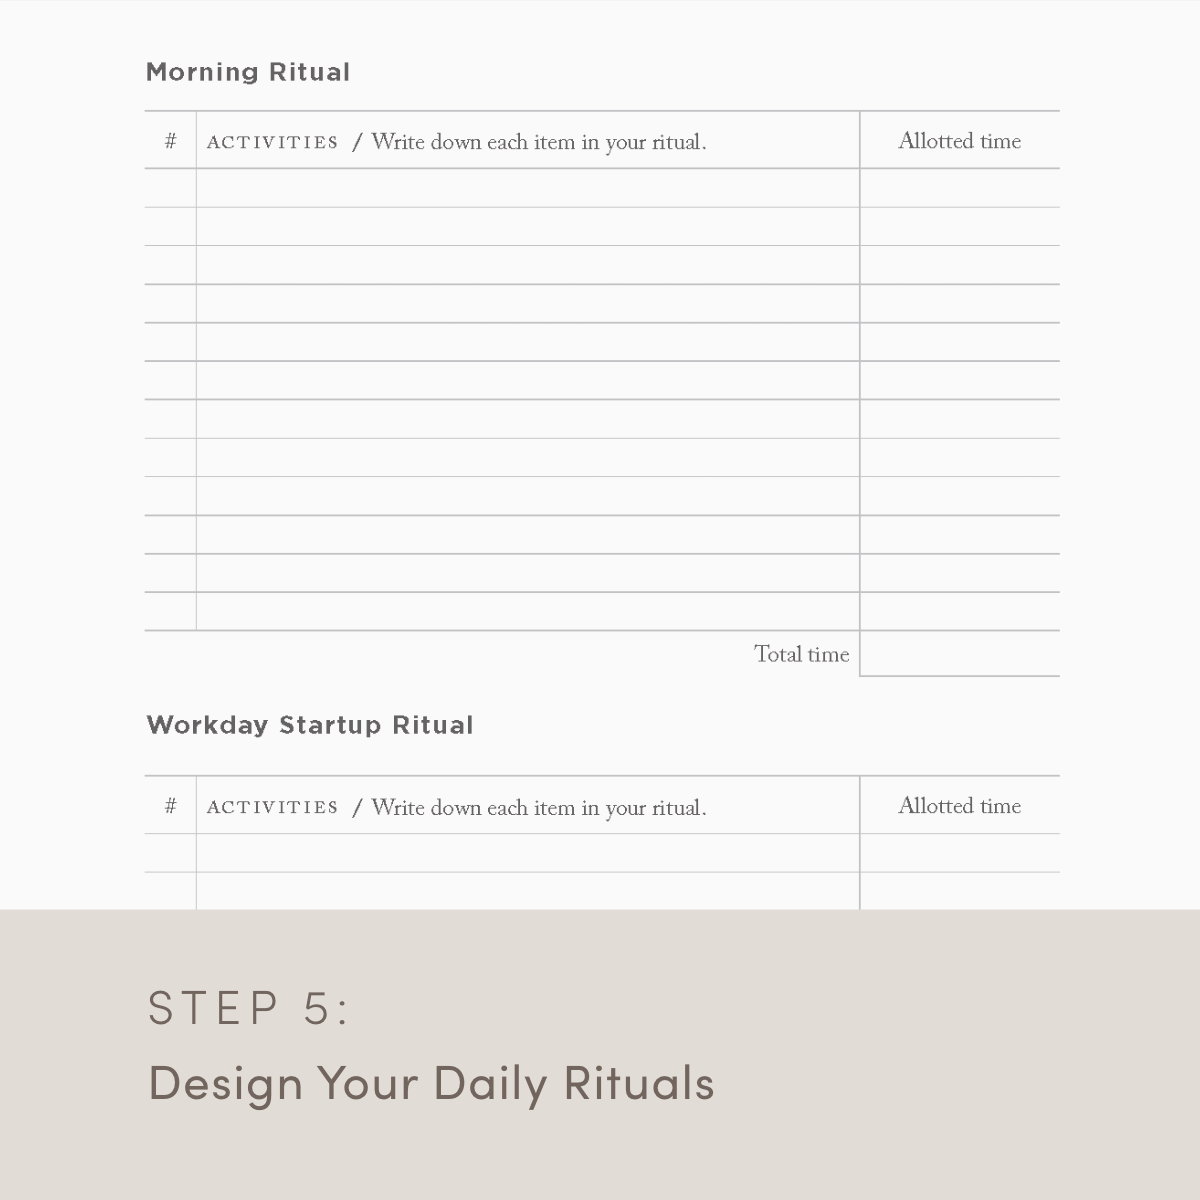 Design your daily rituals